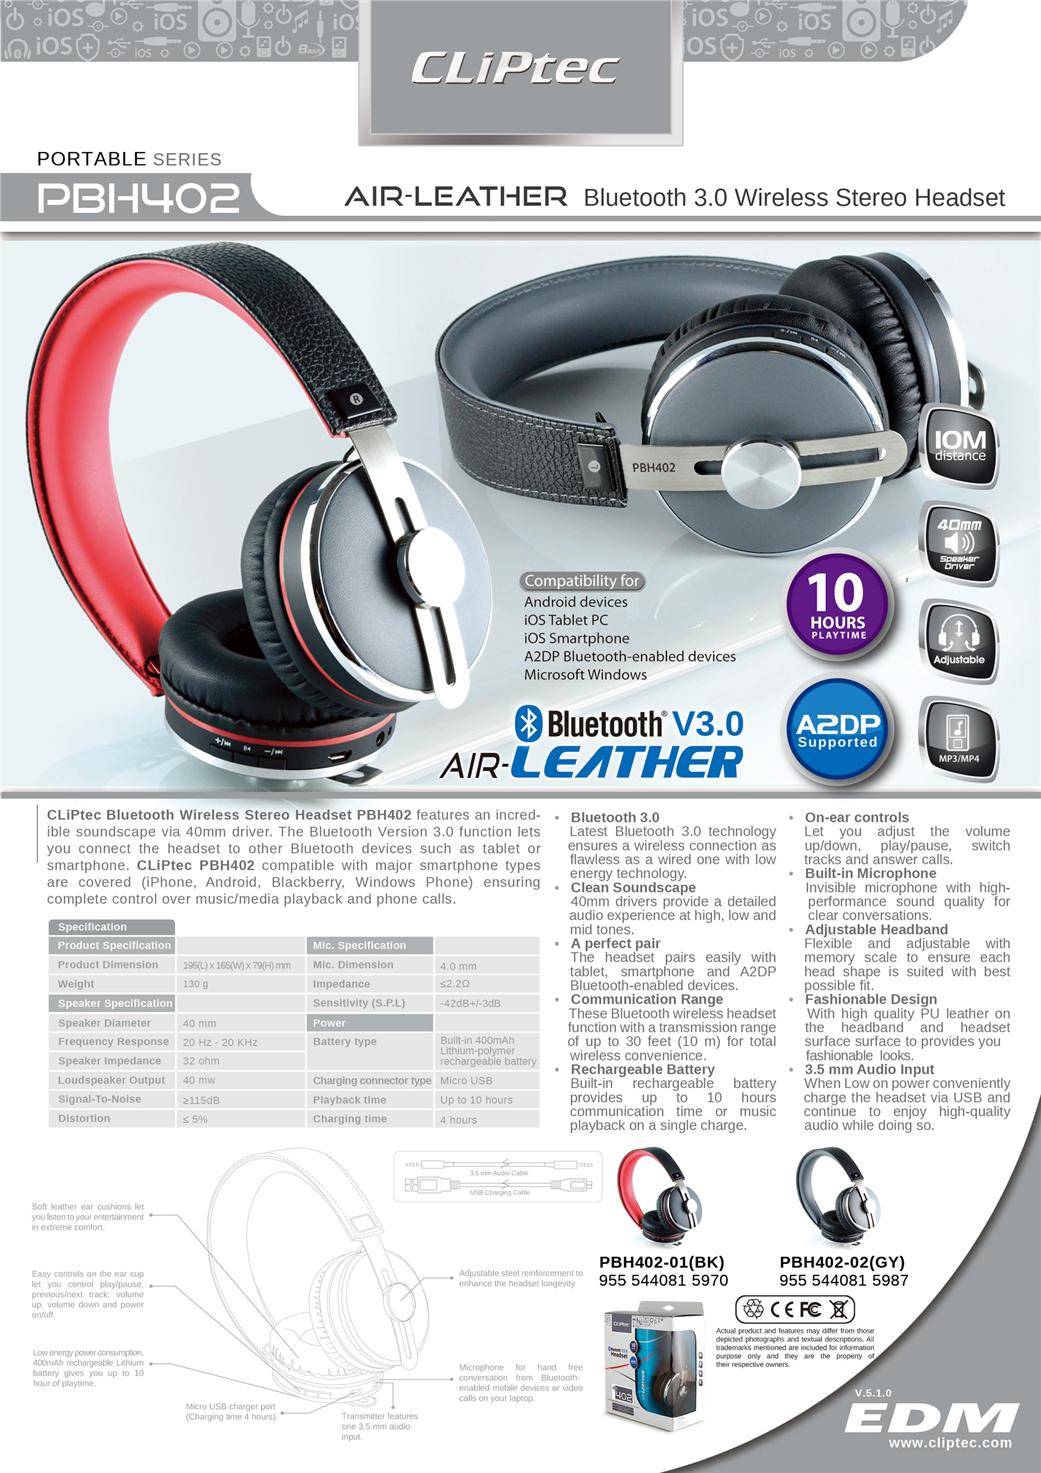 cliptec air leather bluetooth wireless stereo headset headphone pbh402 11street malaysia. Black Bedroom Furniture Sets. Home Design Ideas